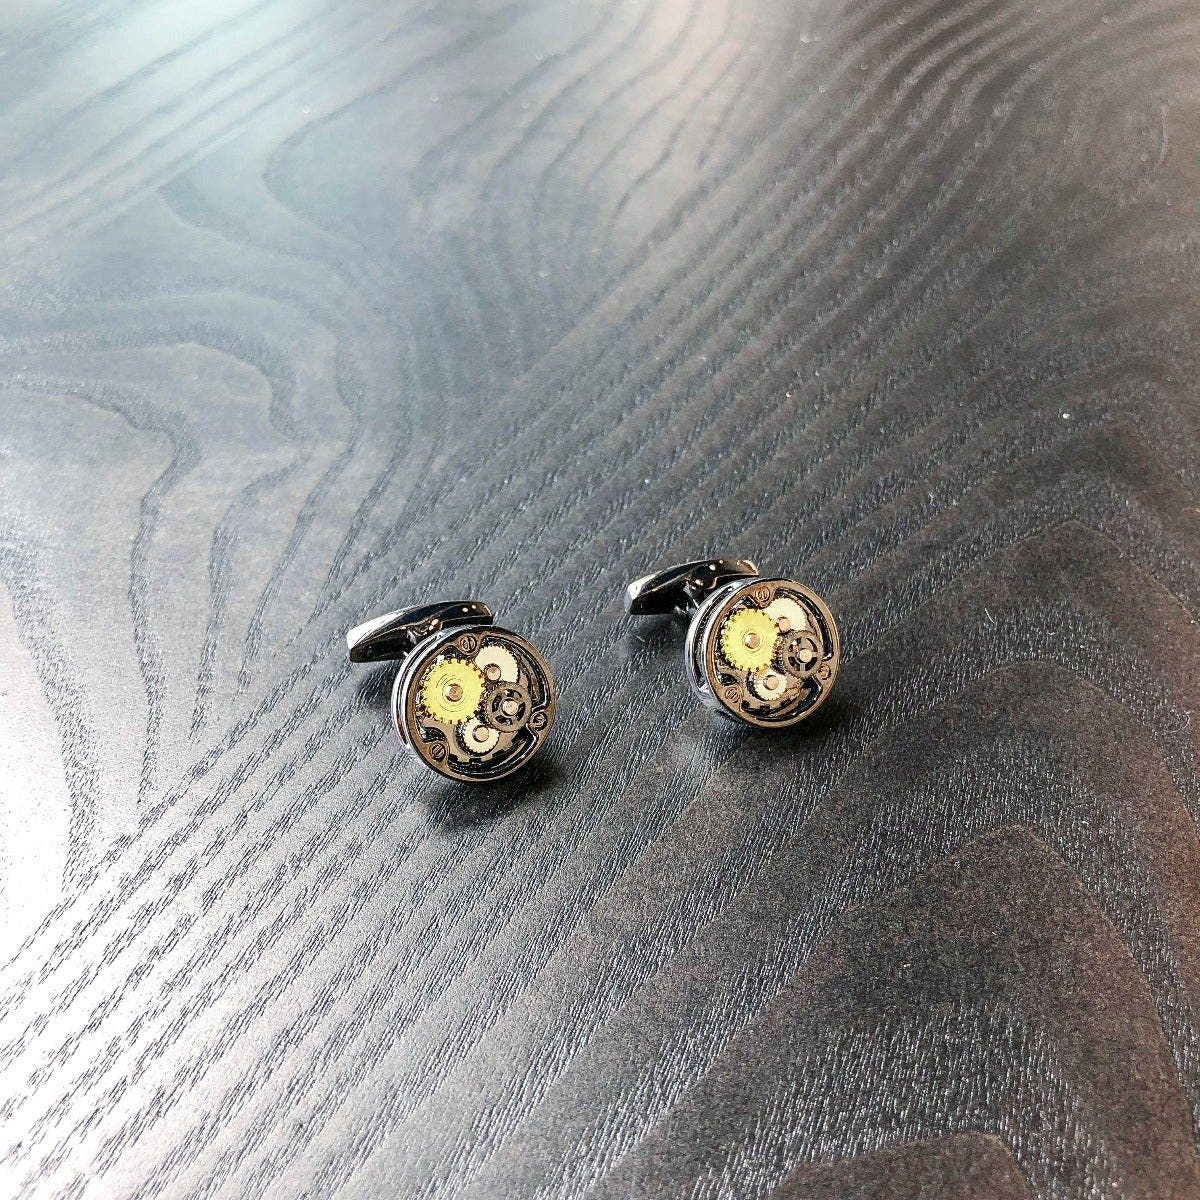 Round Bronze Tri-Color Gear Cufflinks